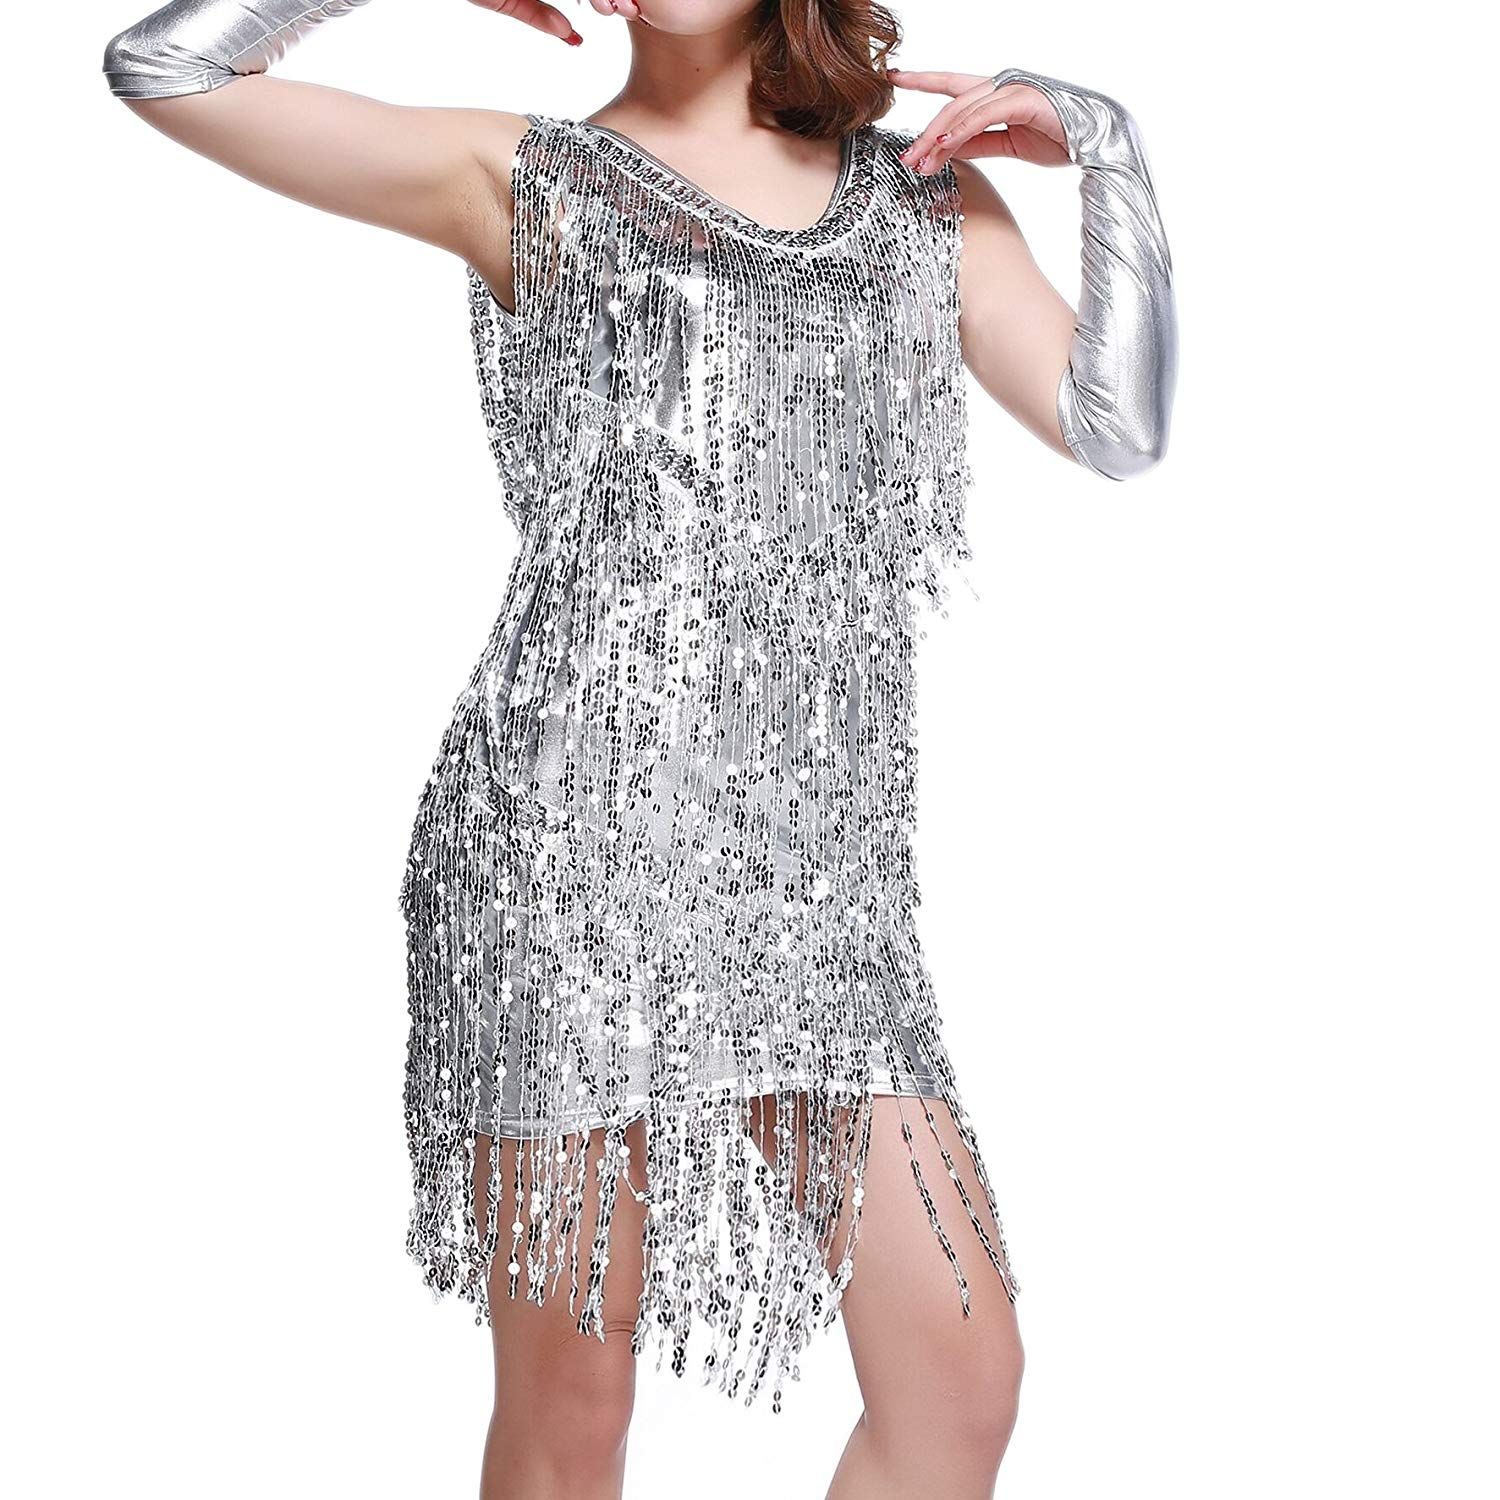 Whitewed V Neck 1920s Sequin Fringe Charleston Flapper Dance Dresses  Costumes 4.2 out of 5 stars 87 customer reviews Price   25.99 -  33.99 023b4a25b